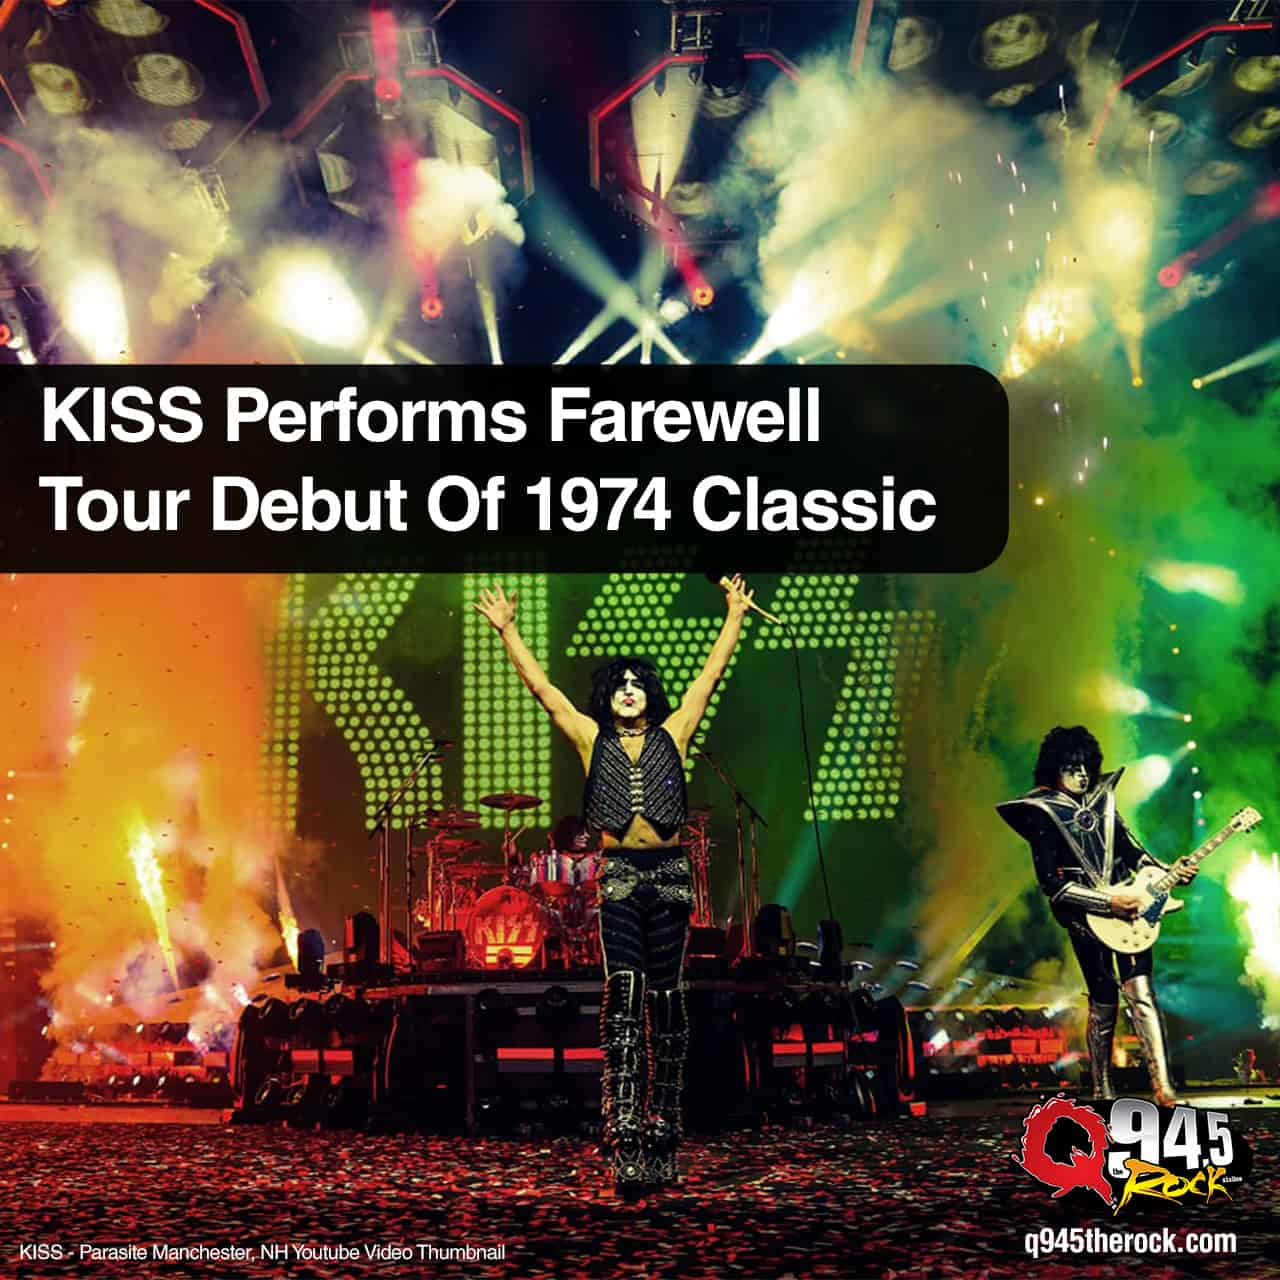 KISS Performs Farewell Tour Debut Of 1974 Classic